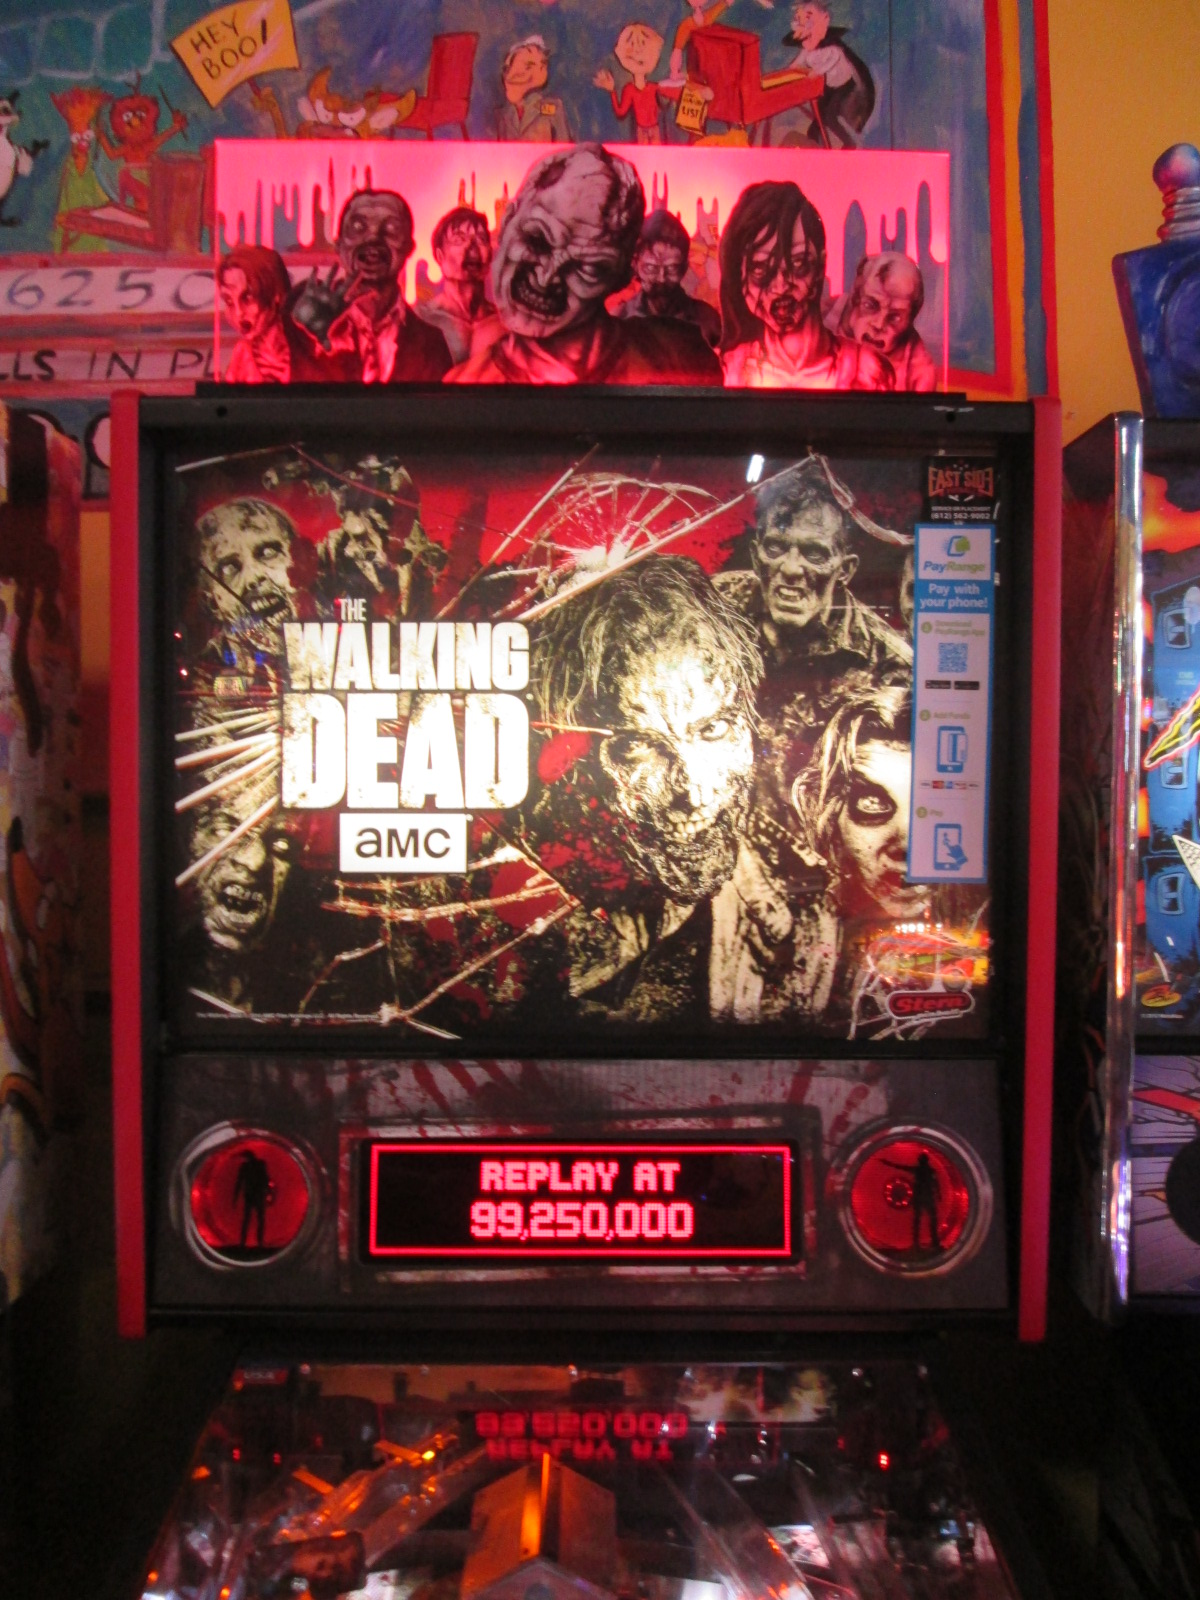 ed1475: The Walking Dead (Pinball: 3 Balls) 6,423,960 points on 2016-08-25 19:13:50